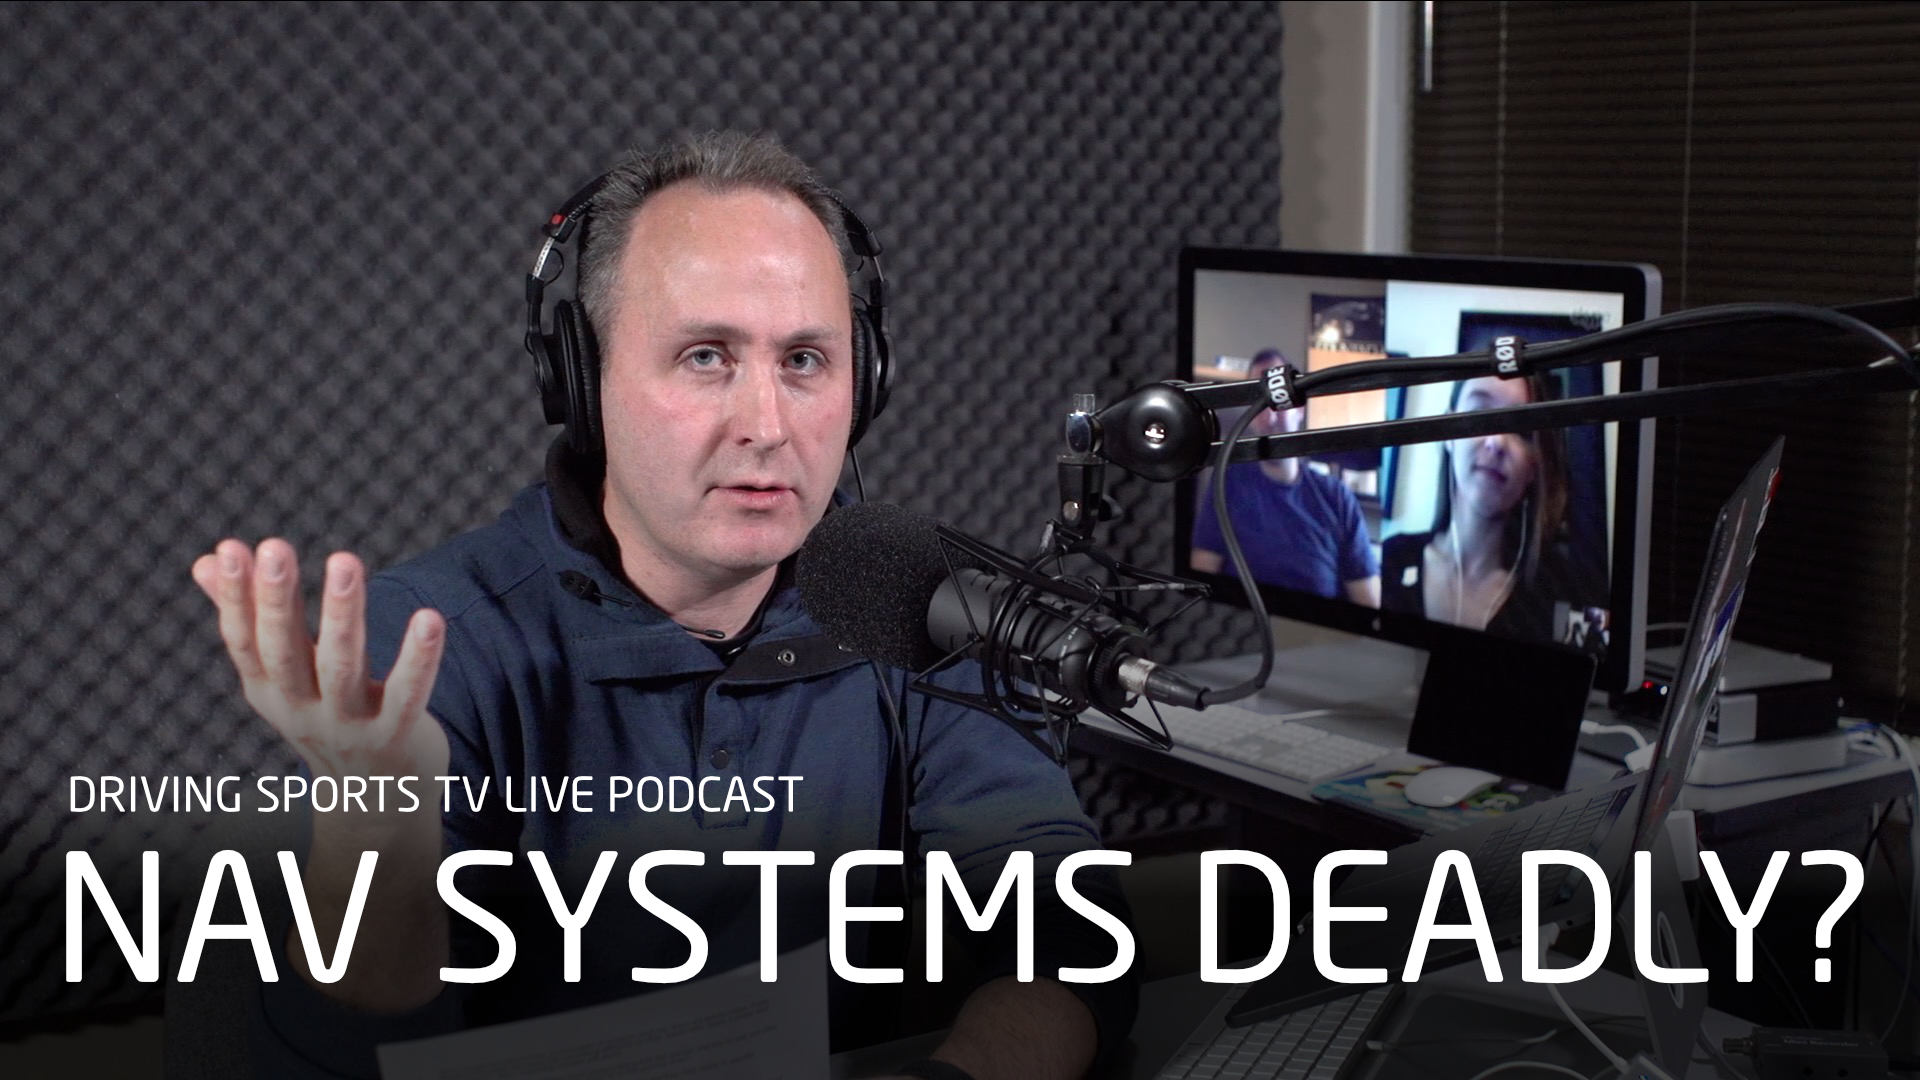 Are Car Infotainment Systems Dangerous? (Audio Only)